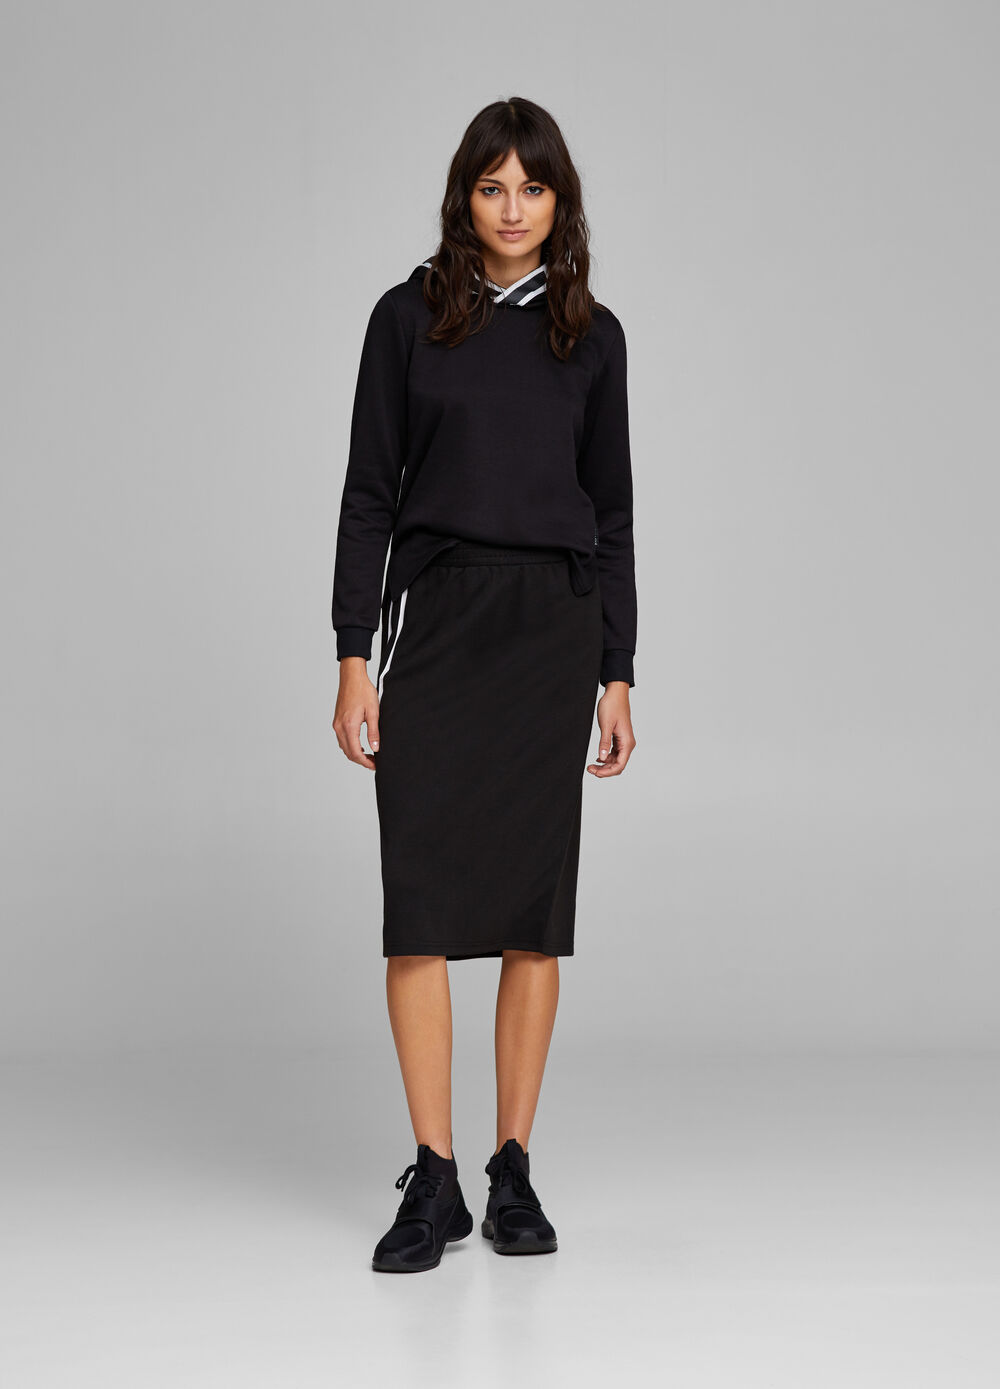 K+K for OVS stretch skirt